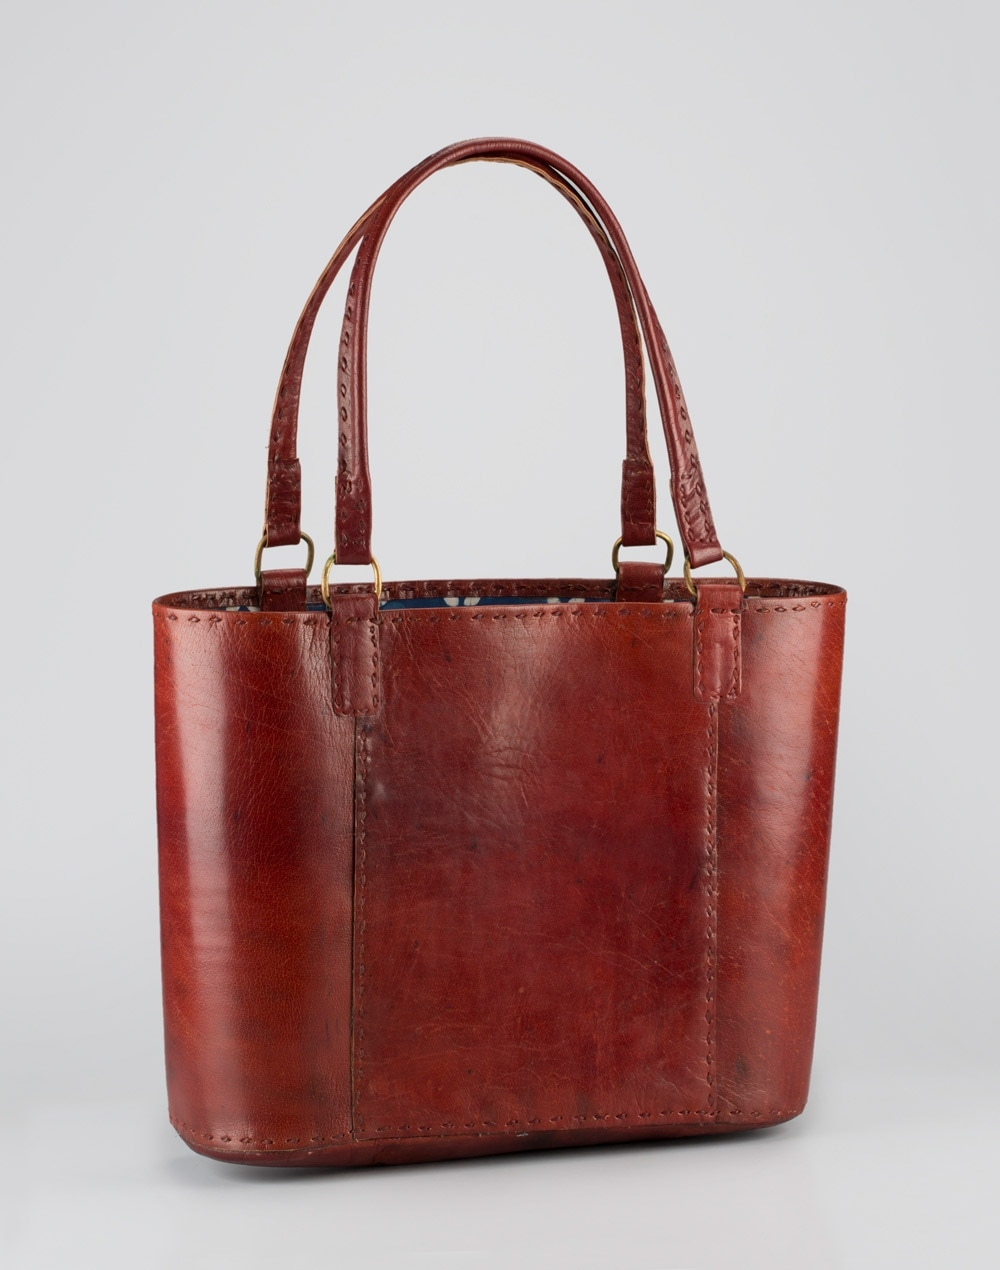 Fabindia Leather Tote Bag With